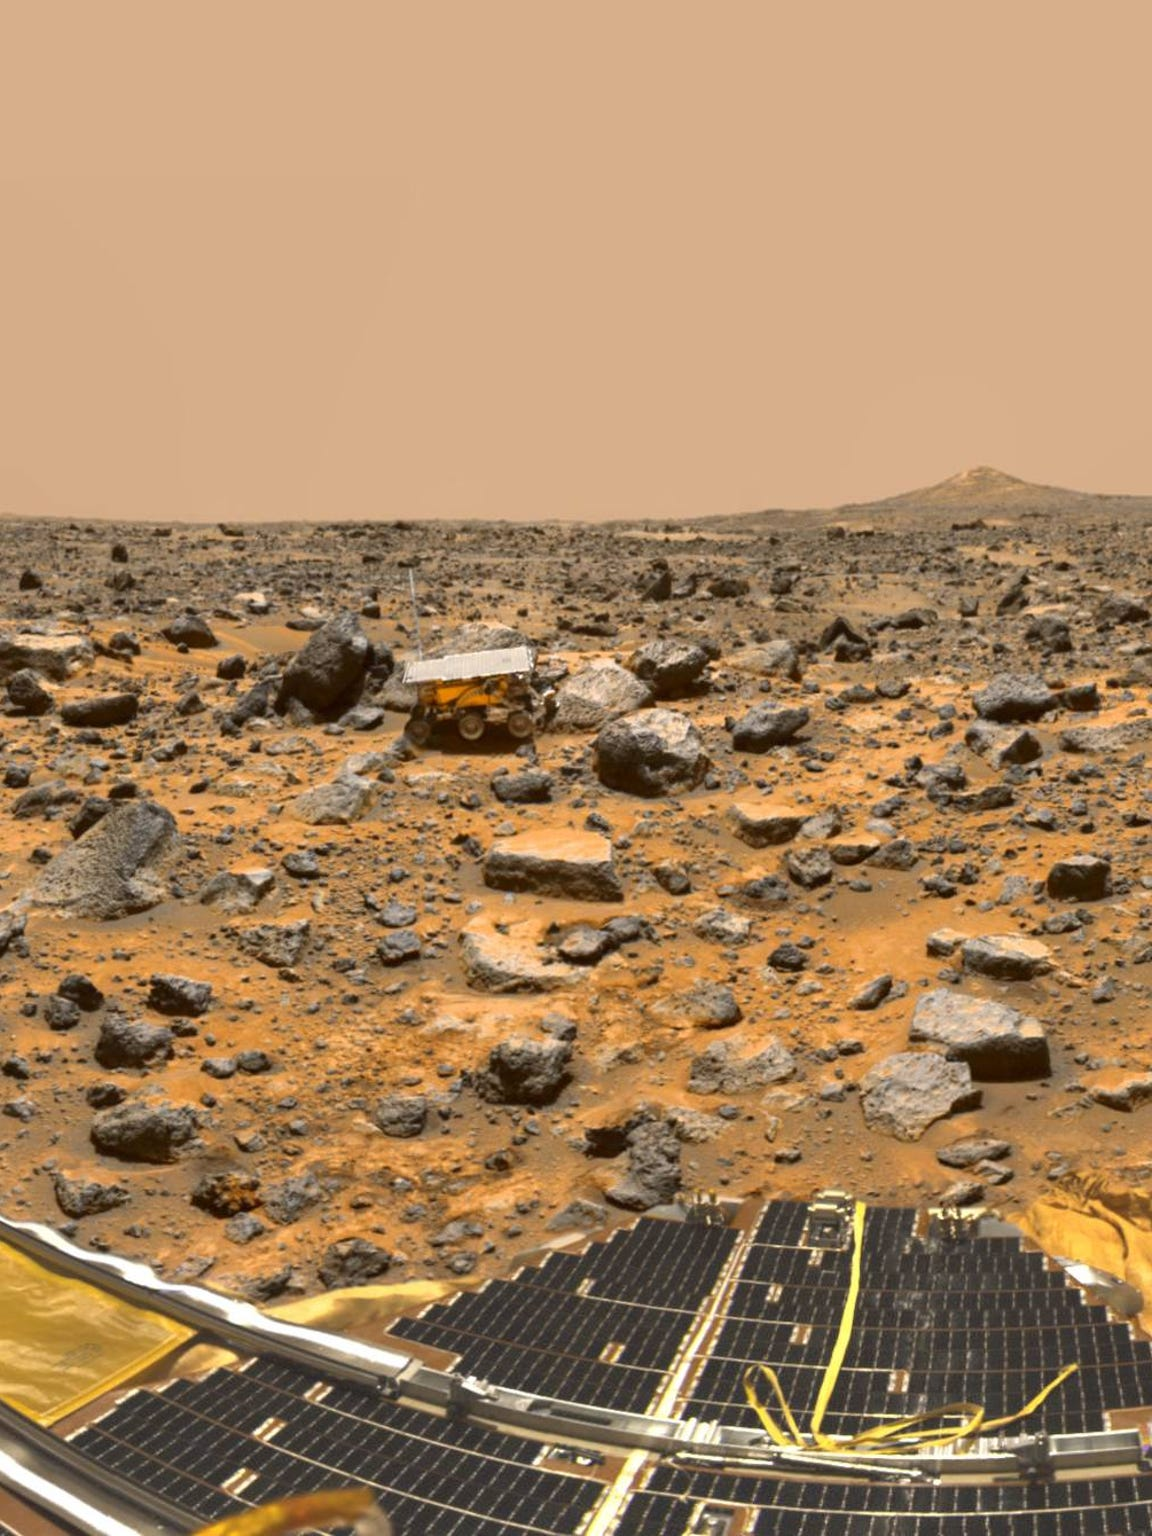 "December 4, 1996: Mars Pathfinder was designed to show the development of ""faster, better and cheaper"" spacecraft was possible. It was the first operational rover on another planet."